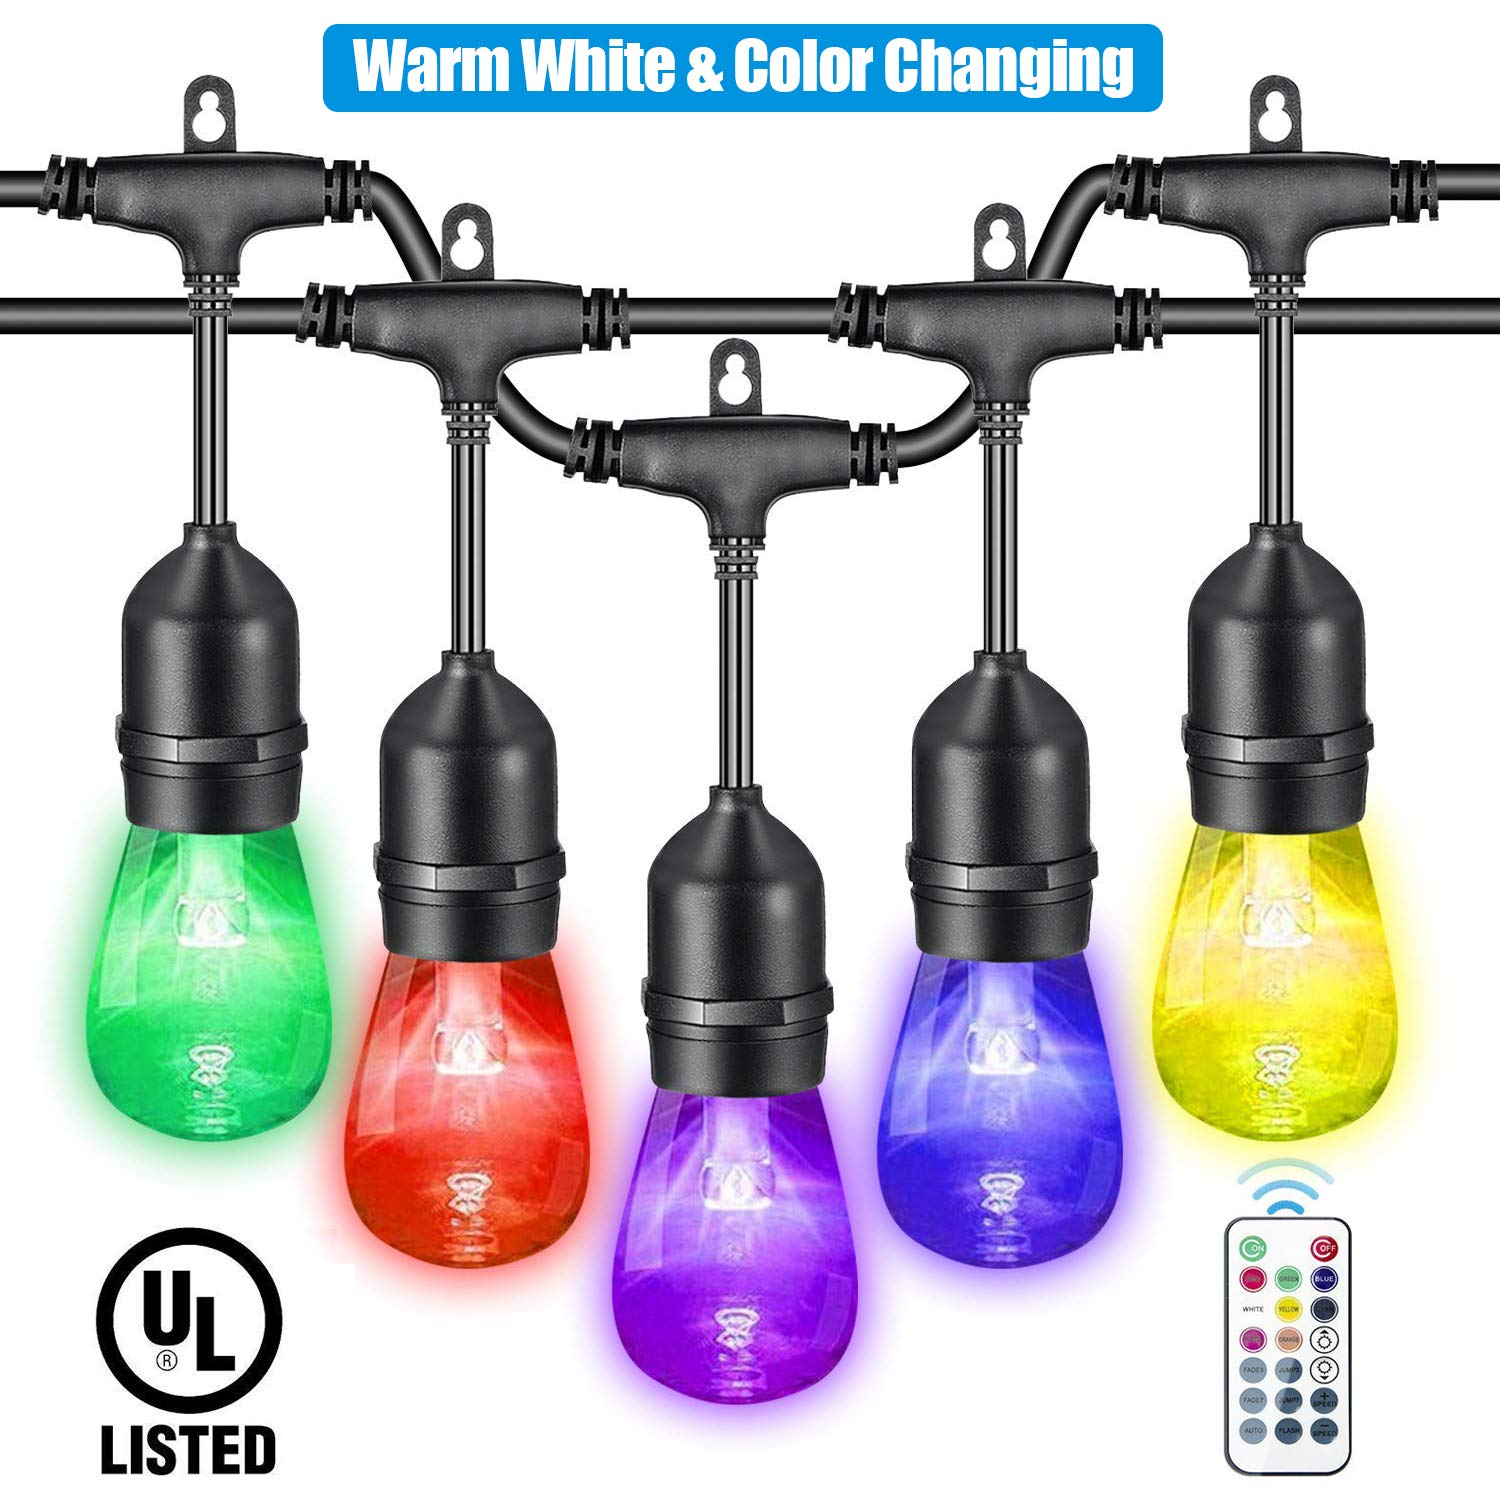 VAVOFO 48FT Warm White & Color Changing Outdoor String Lights, Dimmable LED Heavy Duty Hanging Patio String Lights Indoor, Commercial Grade, Waterproof, Wireless, UL LISTED by VAVOFO